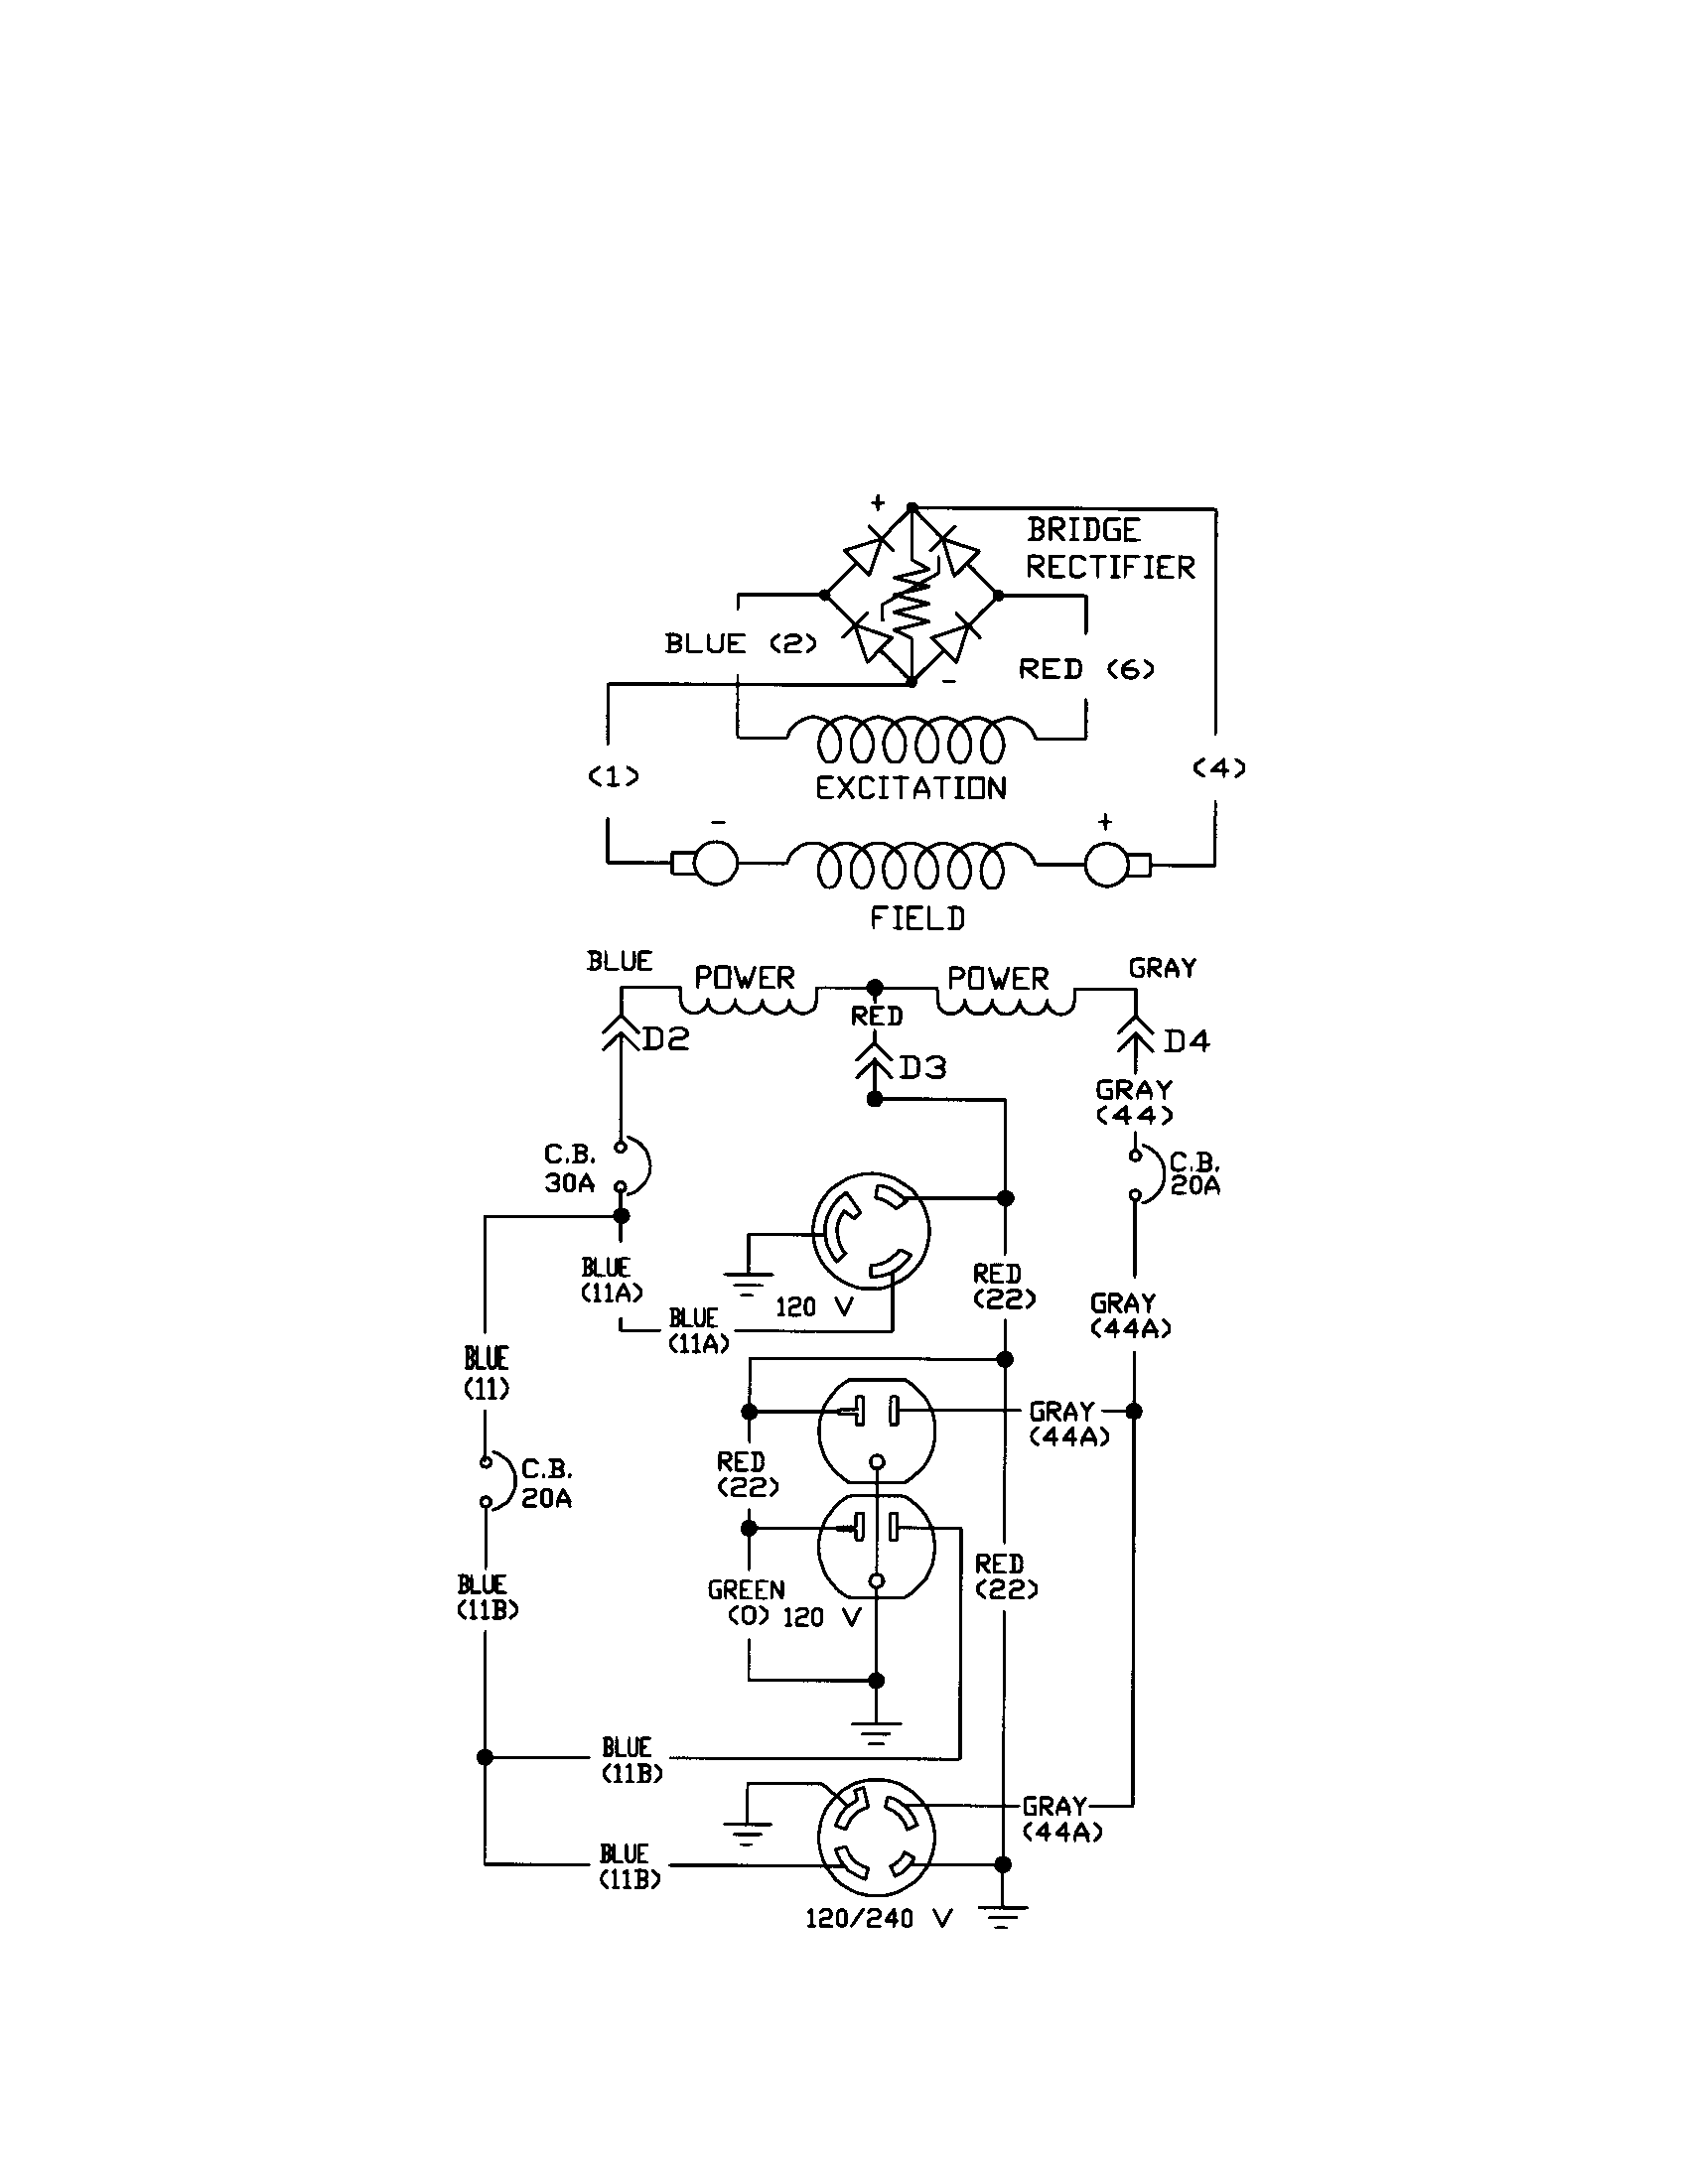 [DIAGRAM] Caterpillar Generator Circuit Diagram FULL